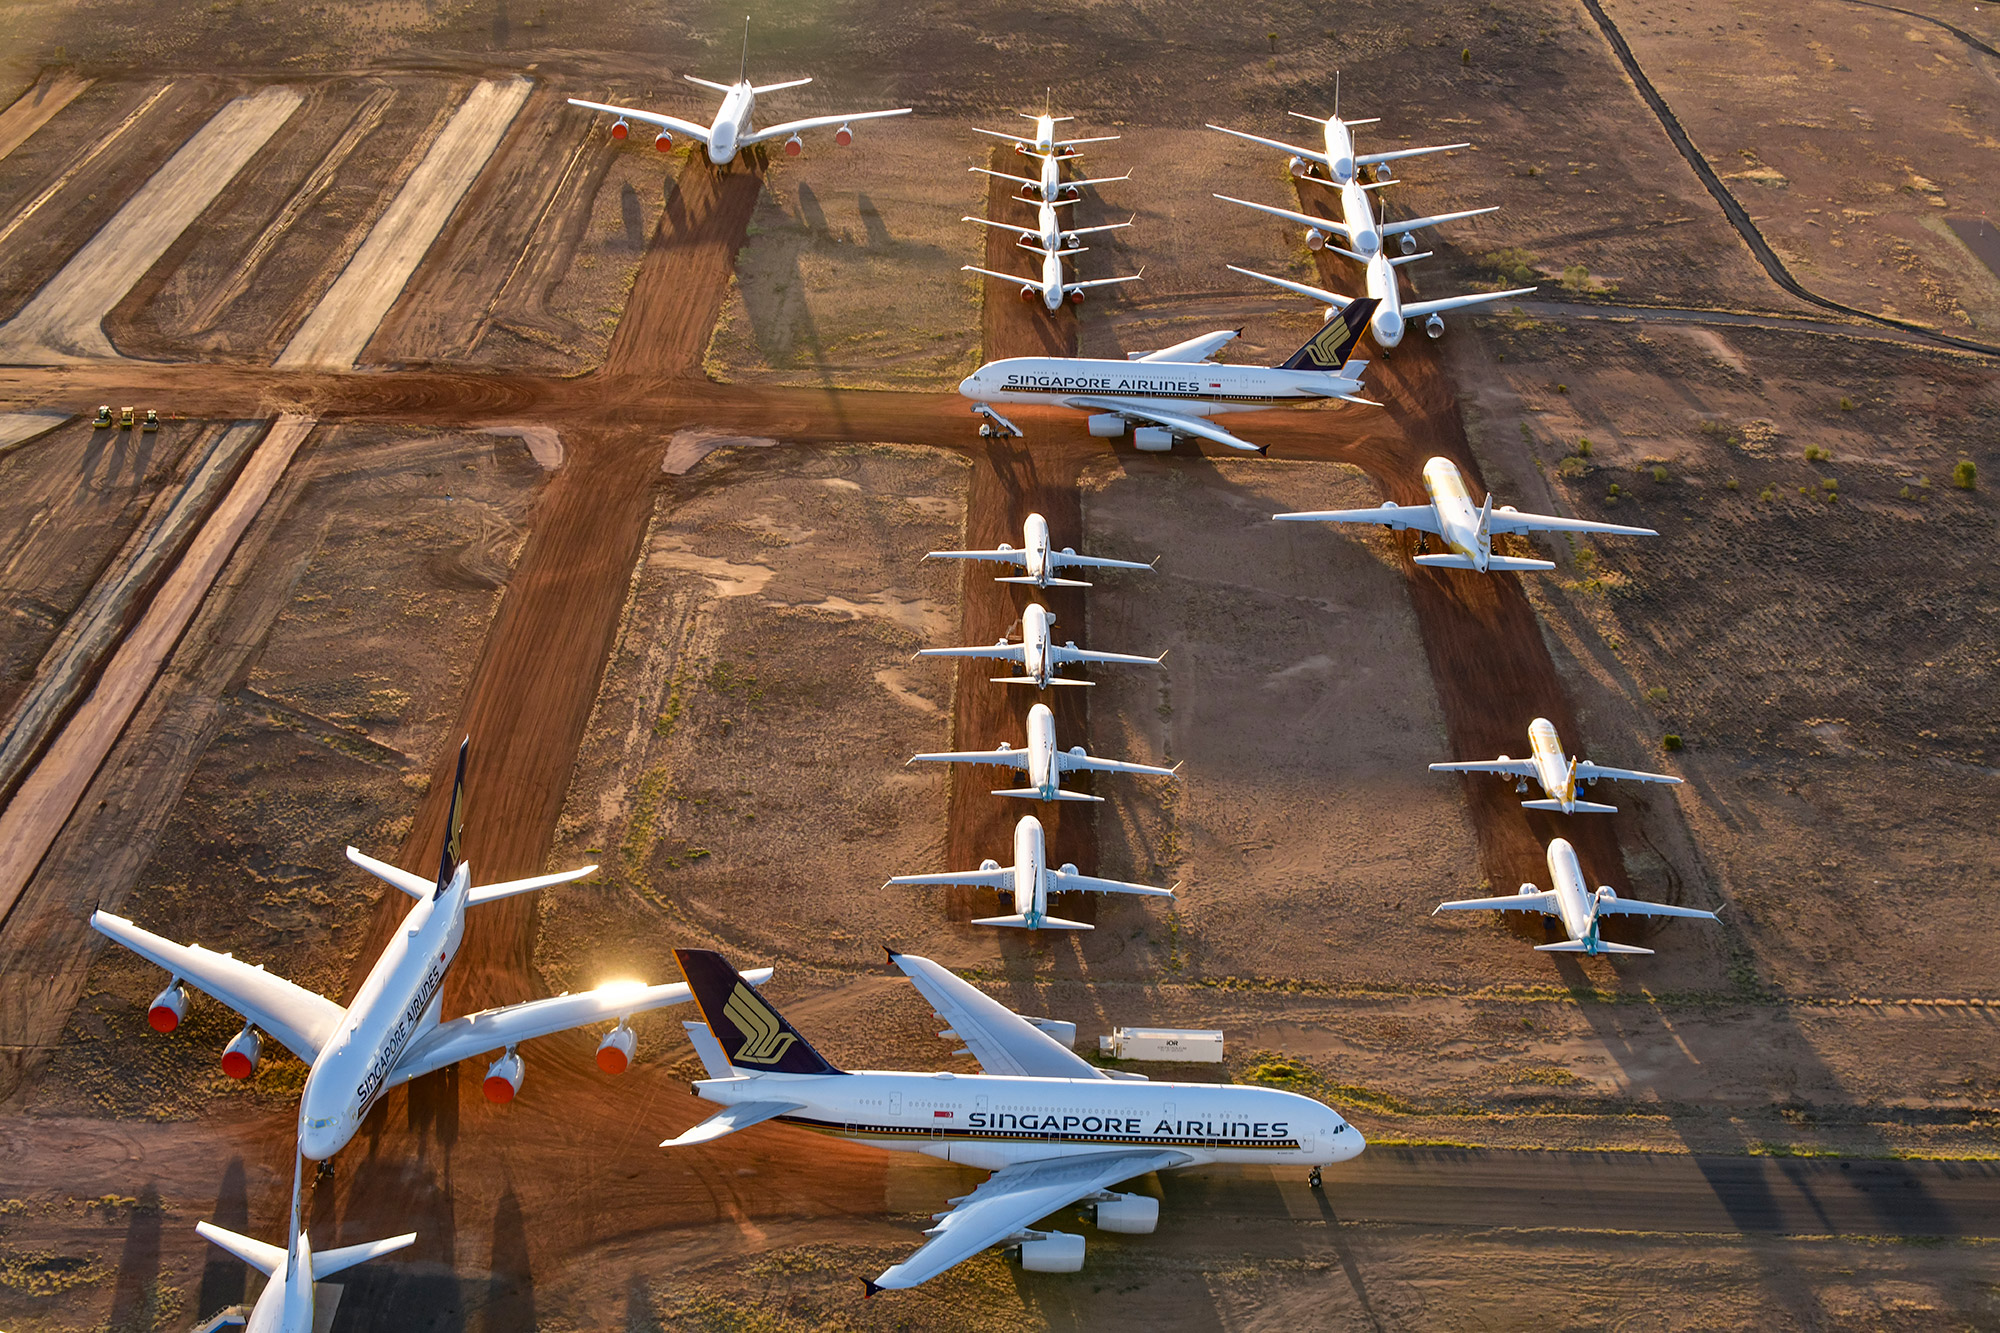 Grounded airplanes are seen in Alice Springs, Australia, on May 15.